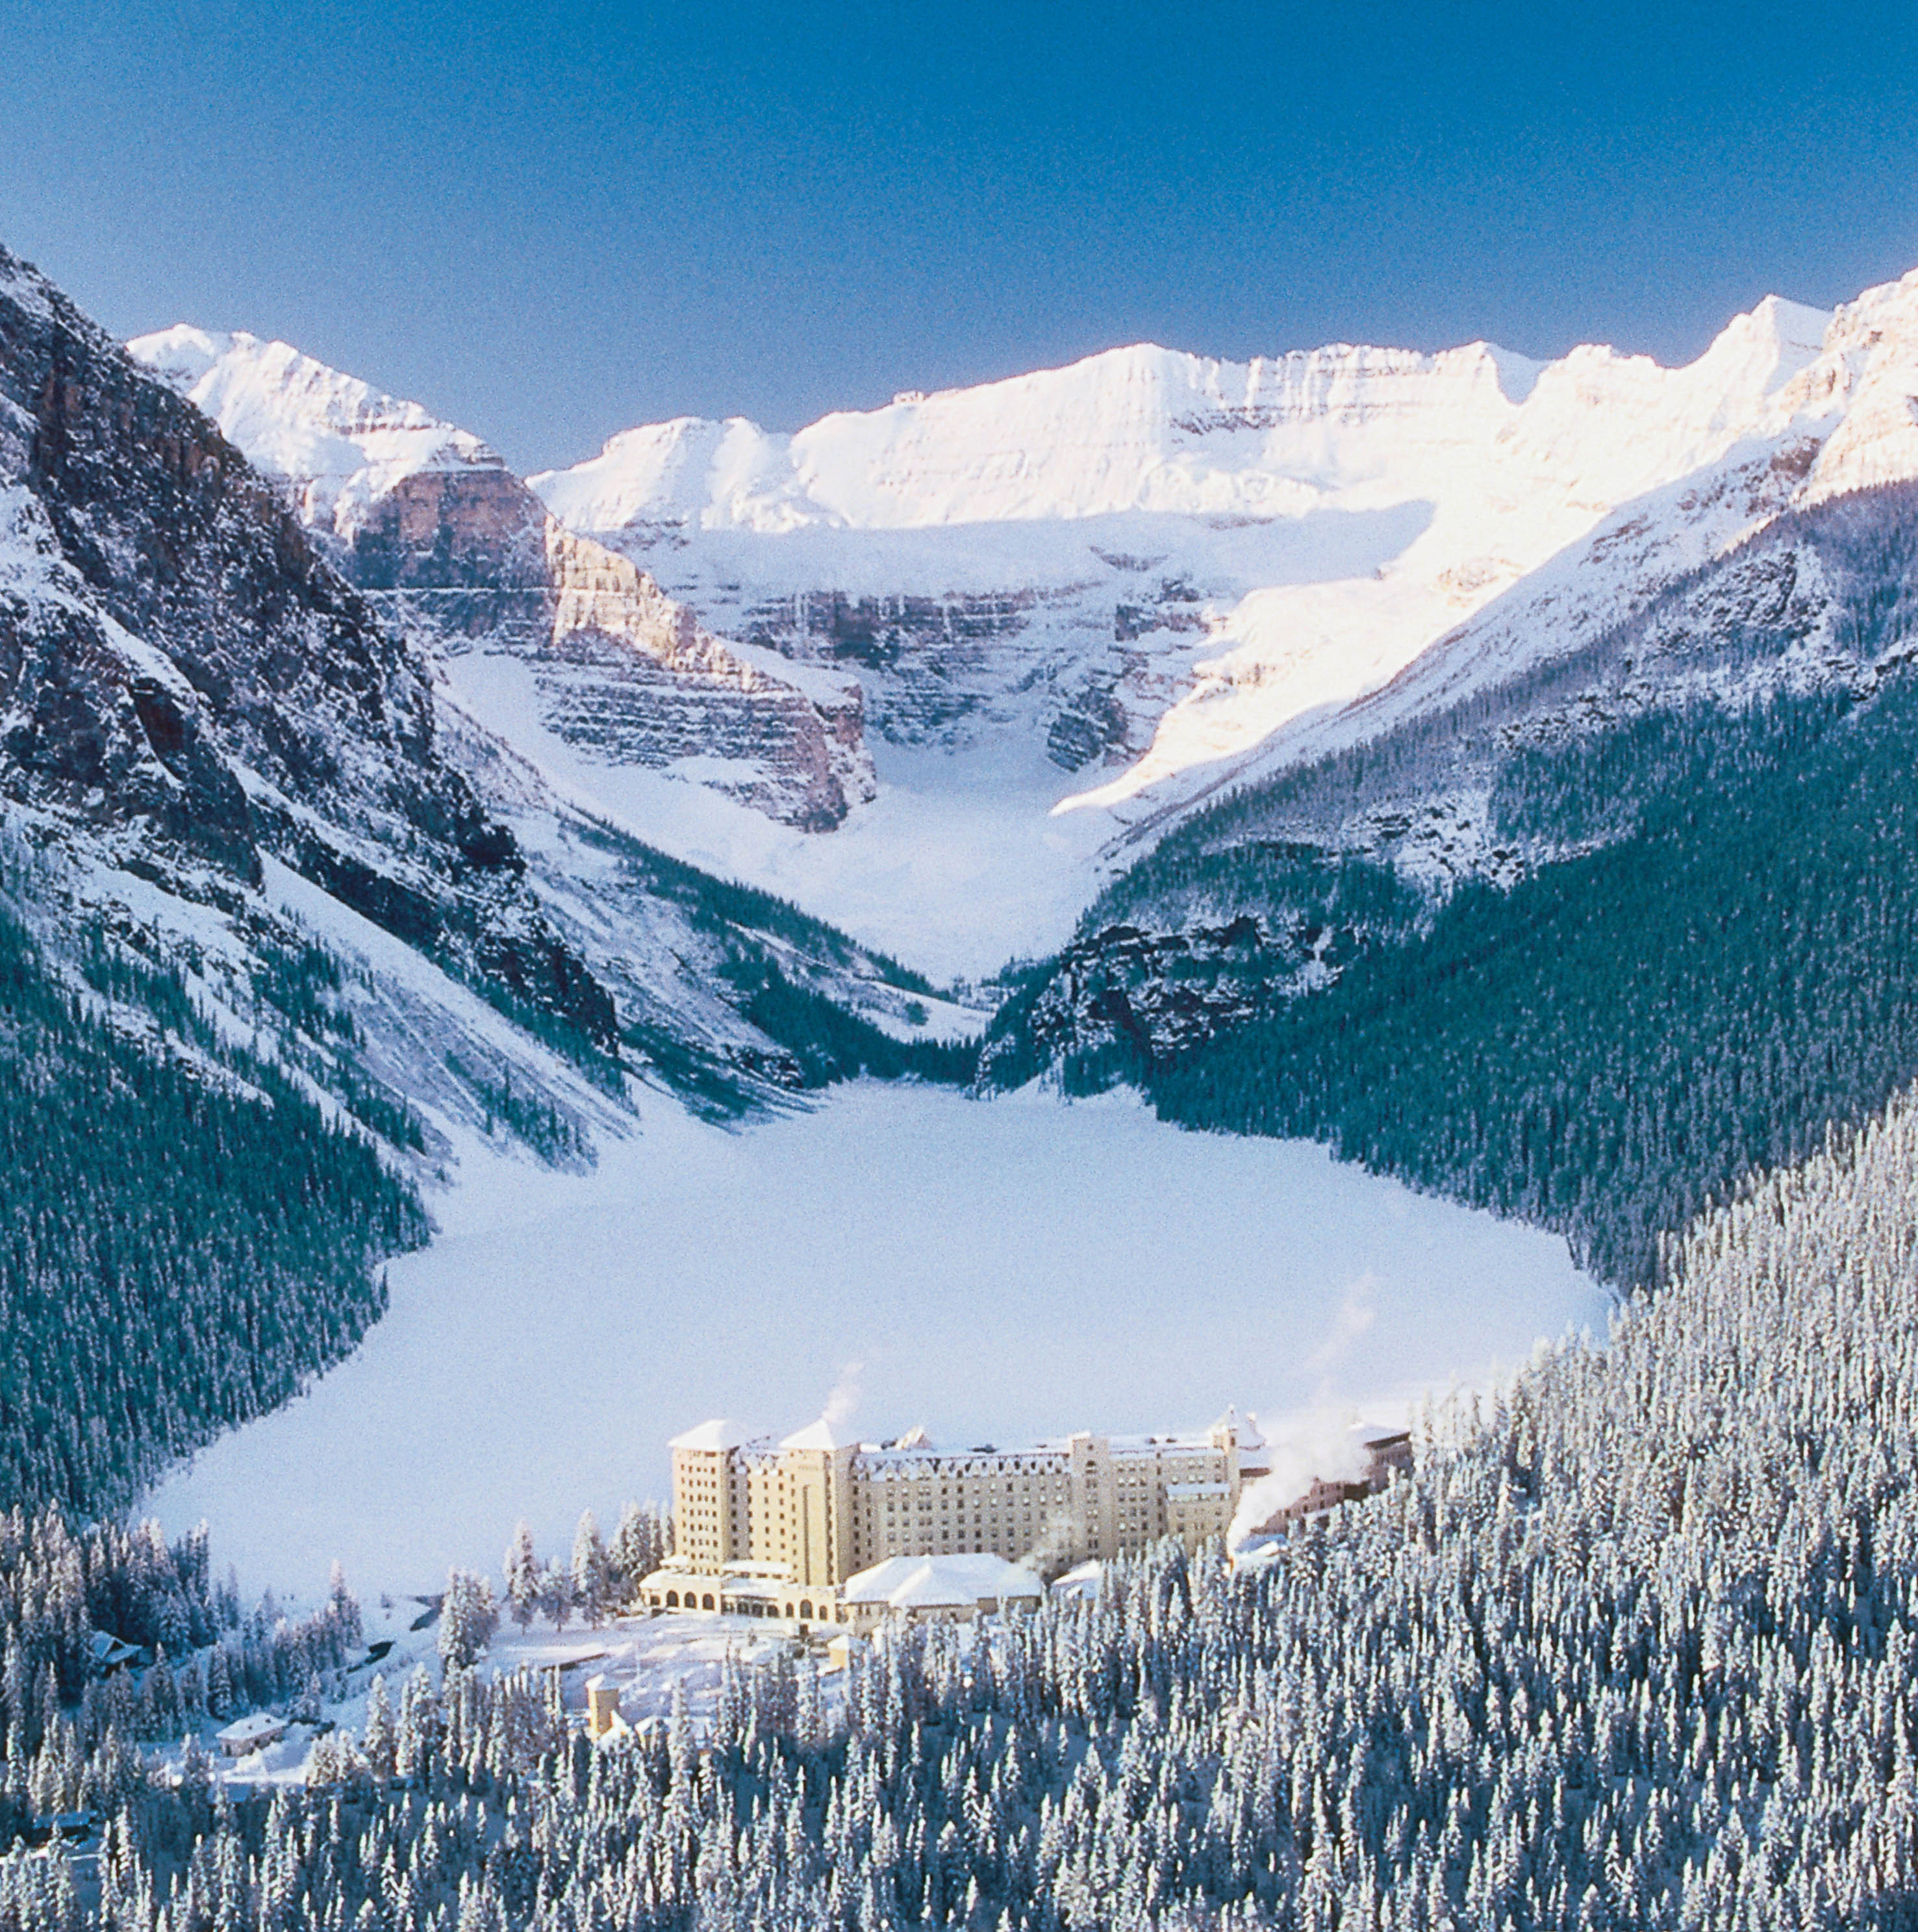 Christmas At The Lake: Scenic's Christmas Wonderland Tours In Canada Or Europe